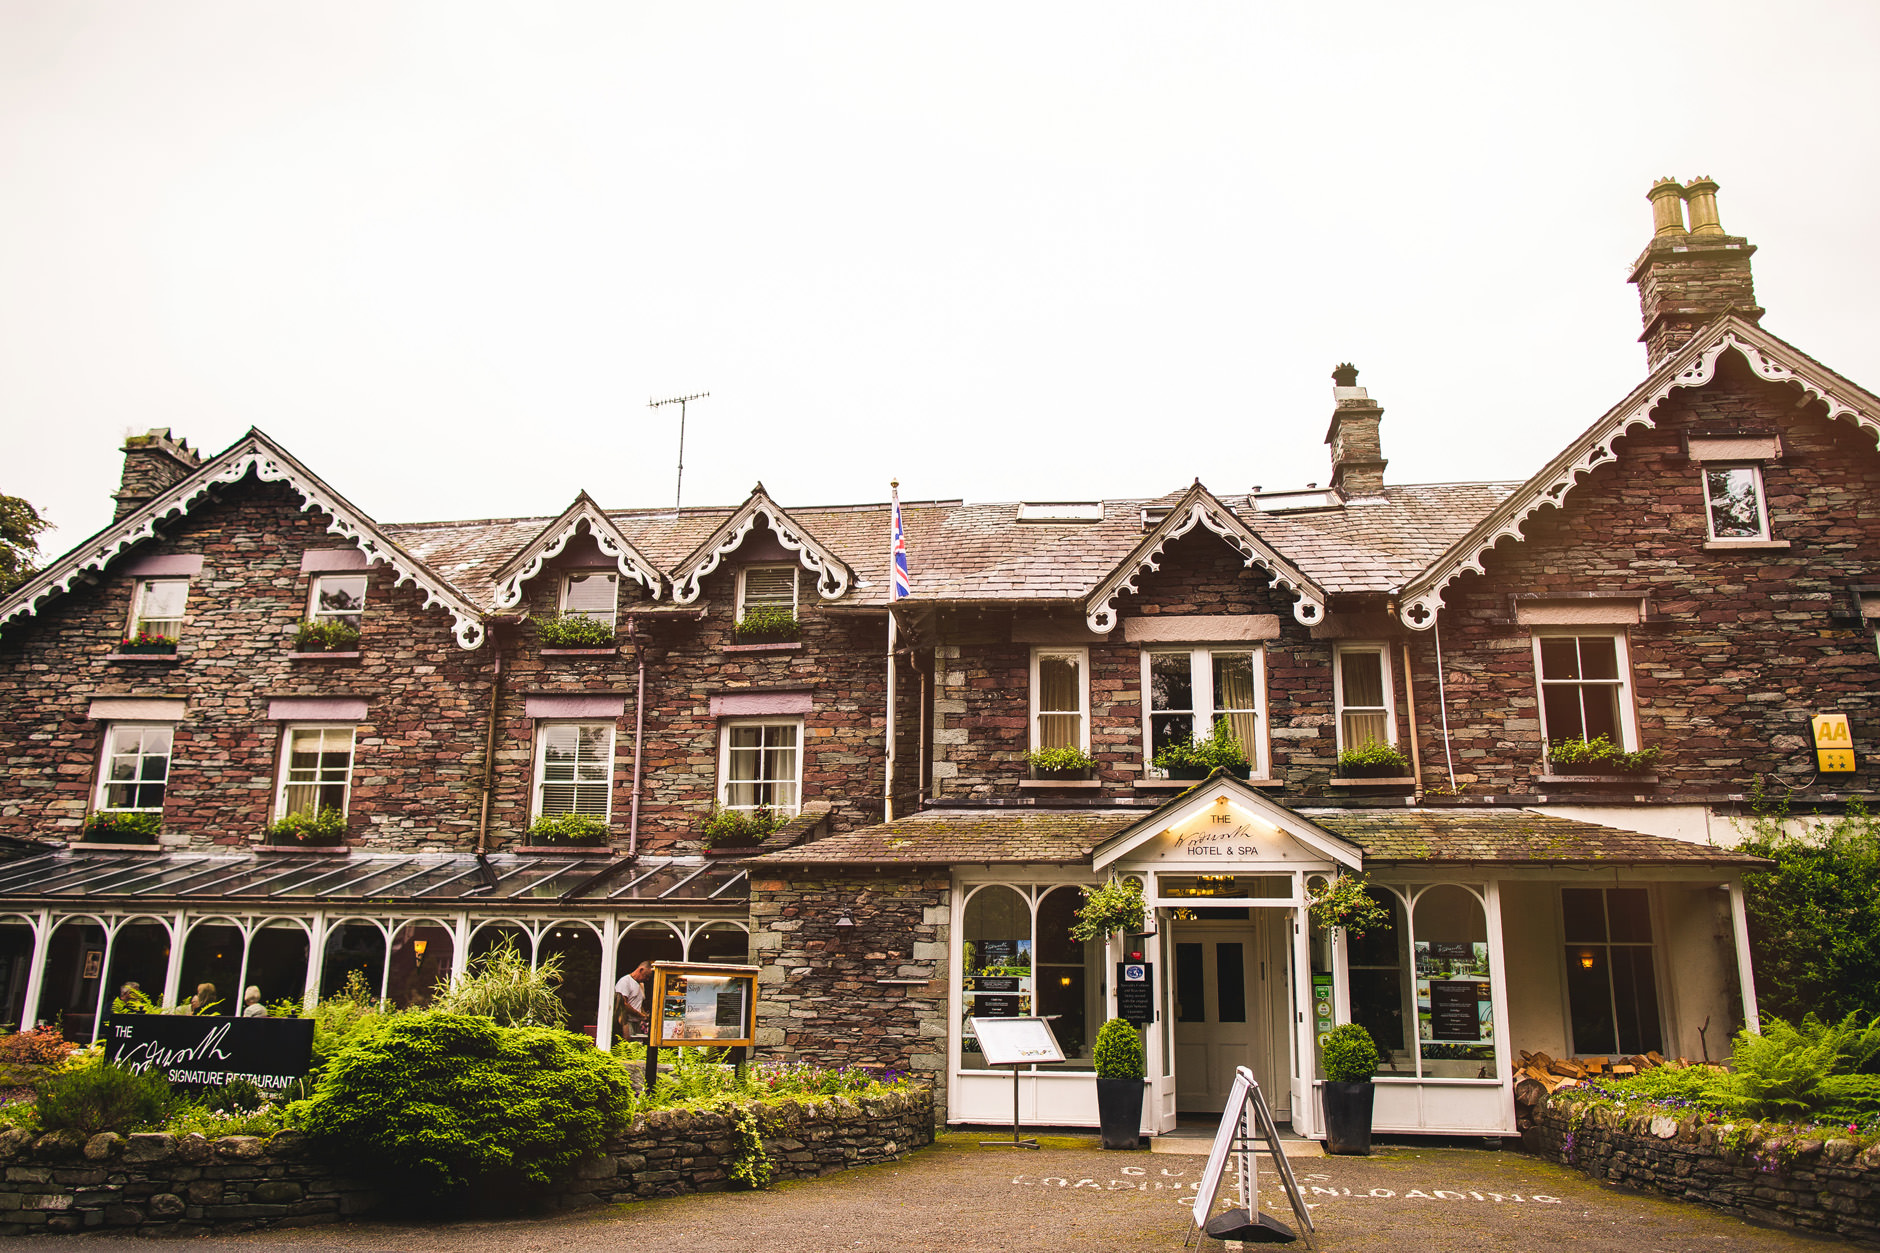 The Wordsworth Hotel and Spa for hire